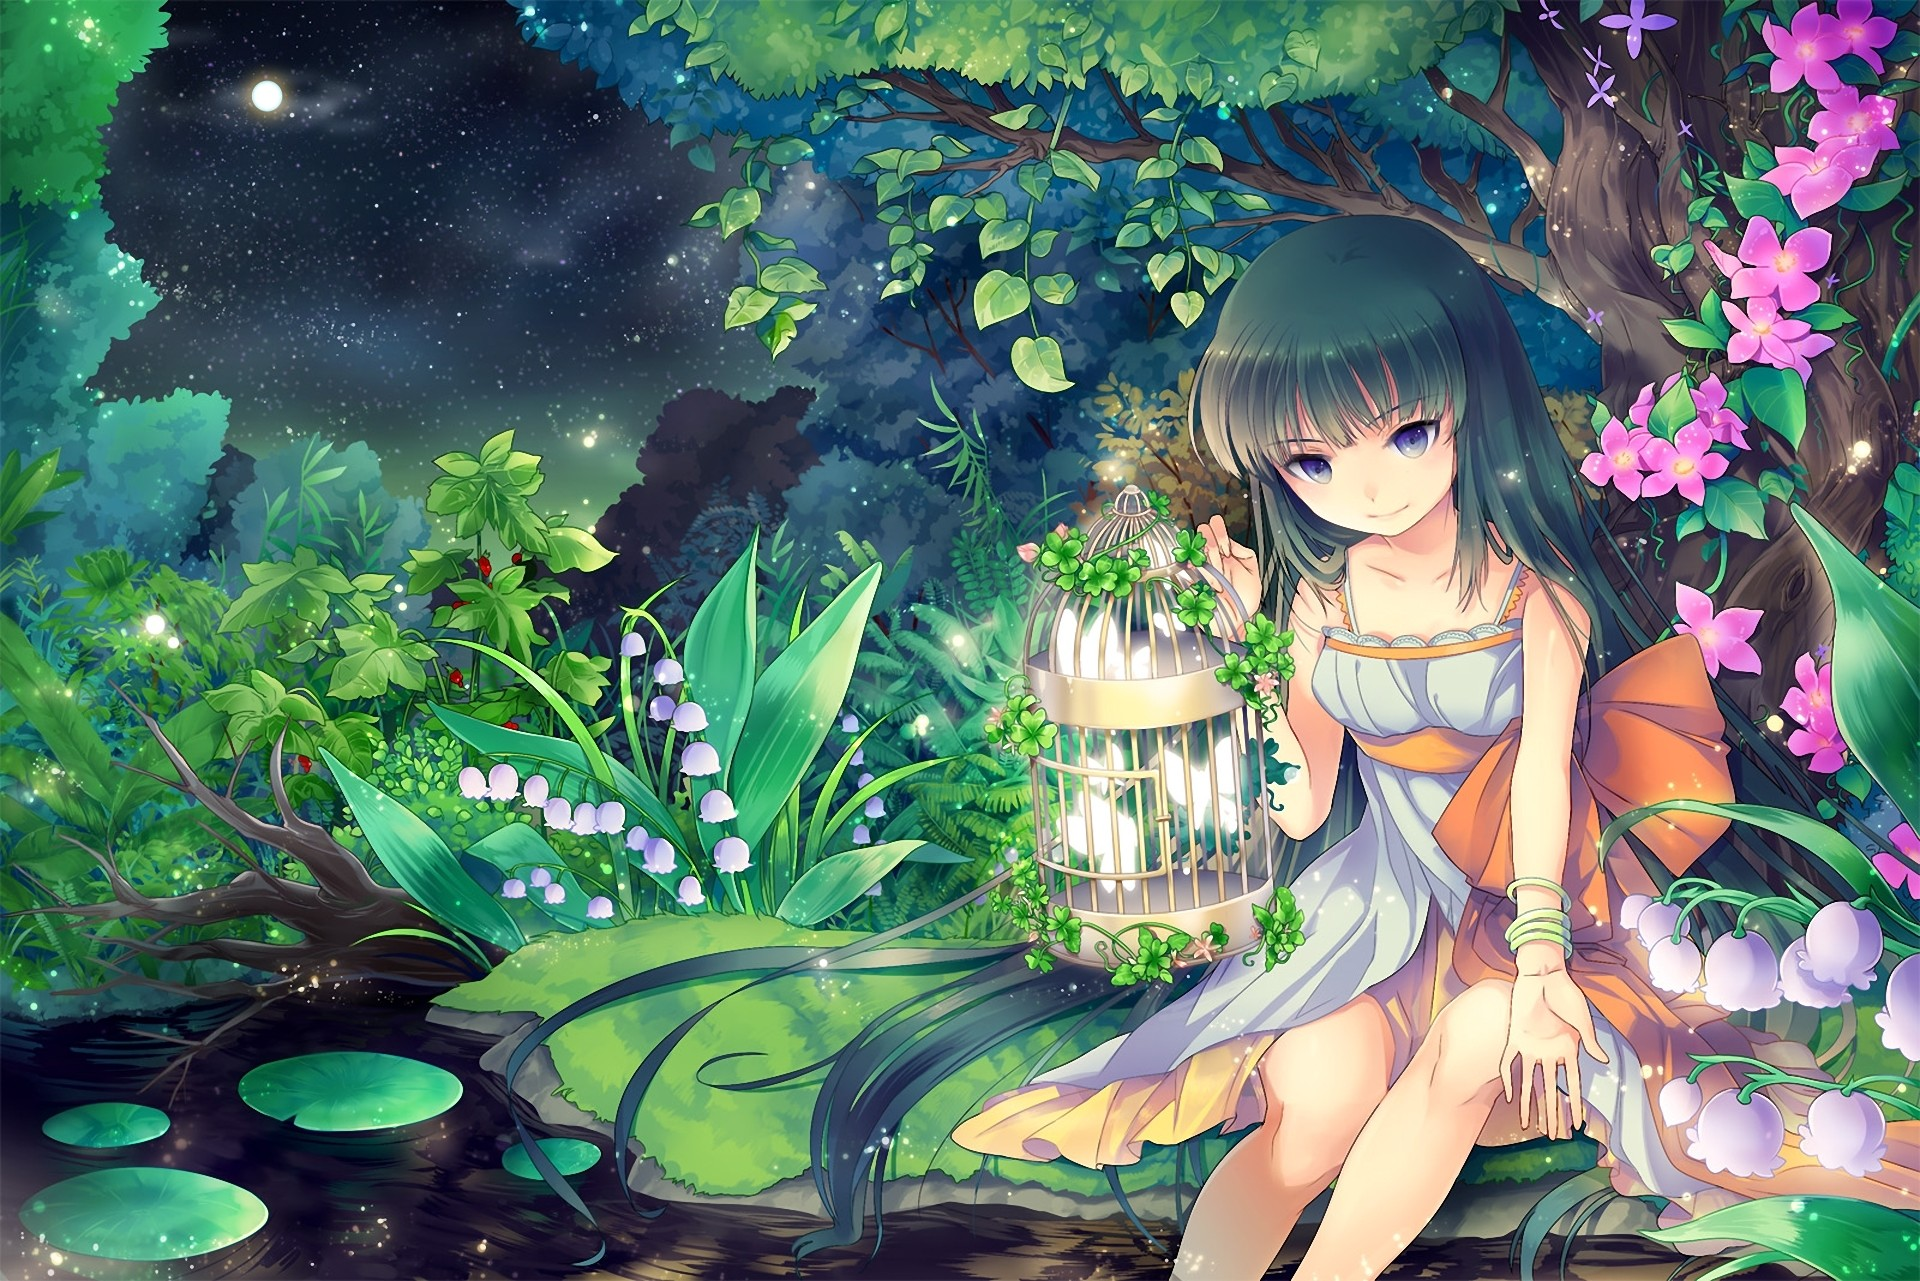 Anime – Girl Anime Purple Eyes Spring Pond Flower Tree Birdcage Night Moon  Wallpaper